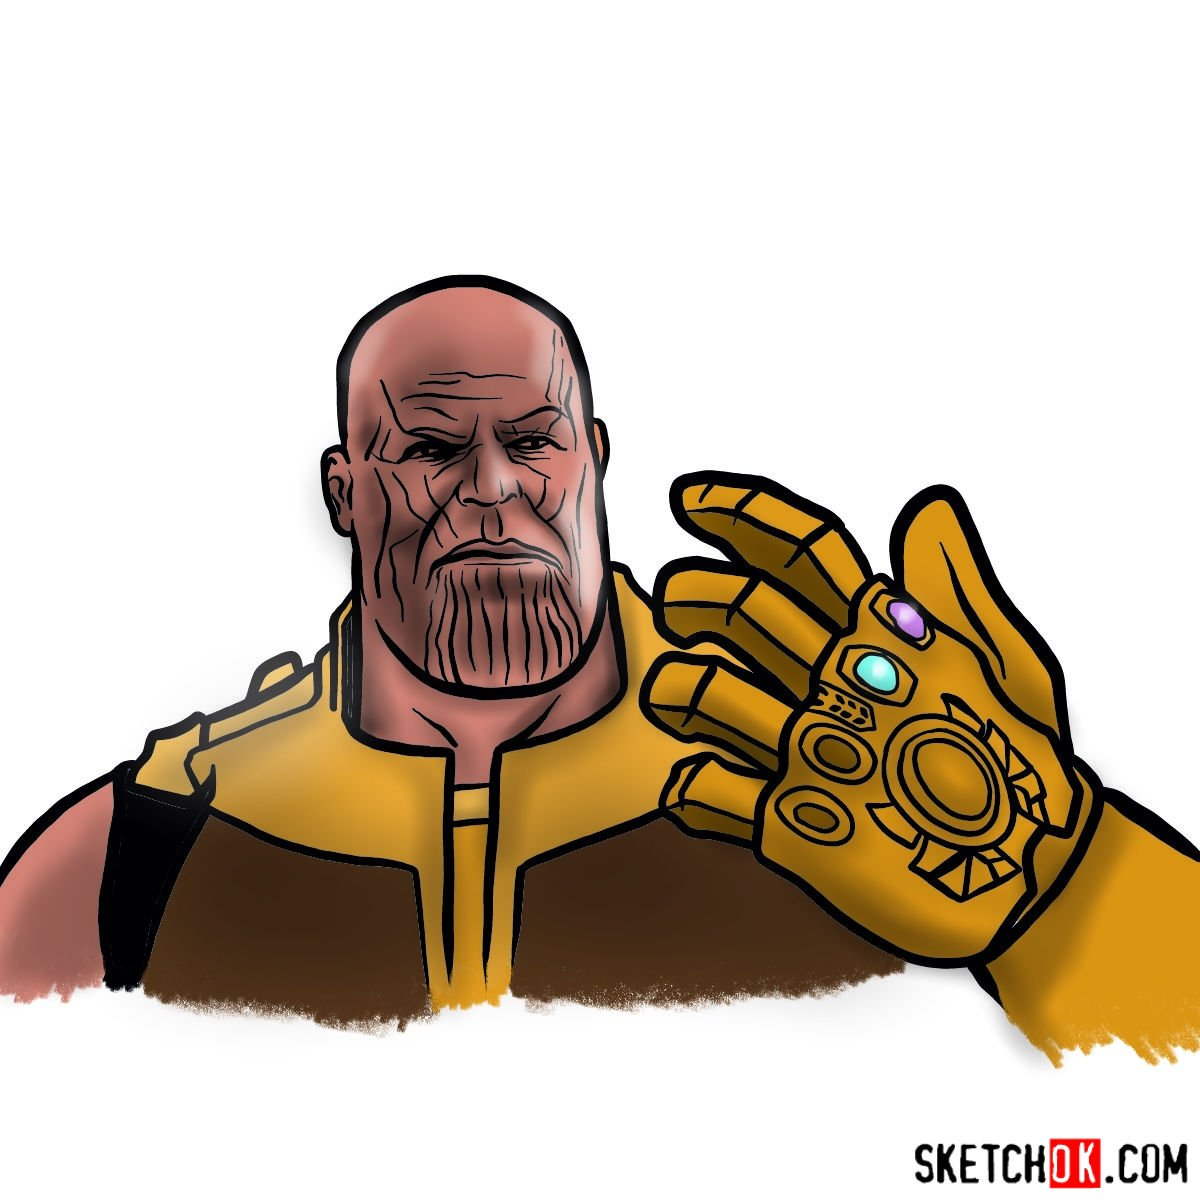 How to draw Thanos from the Avengers: Infinity War 2018 film